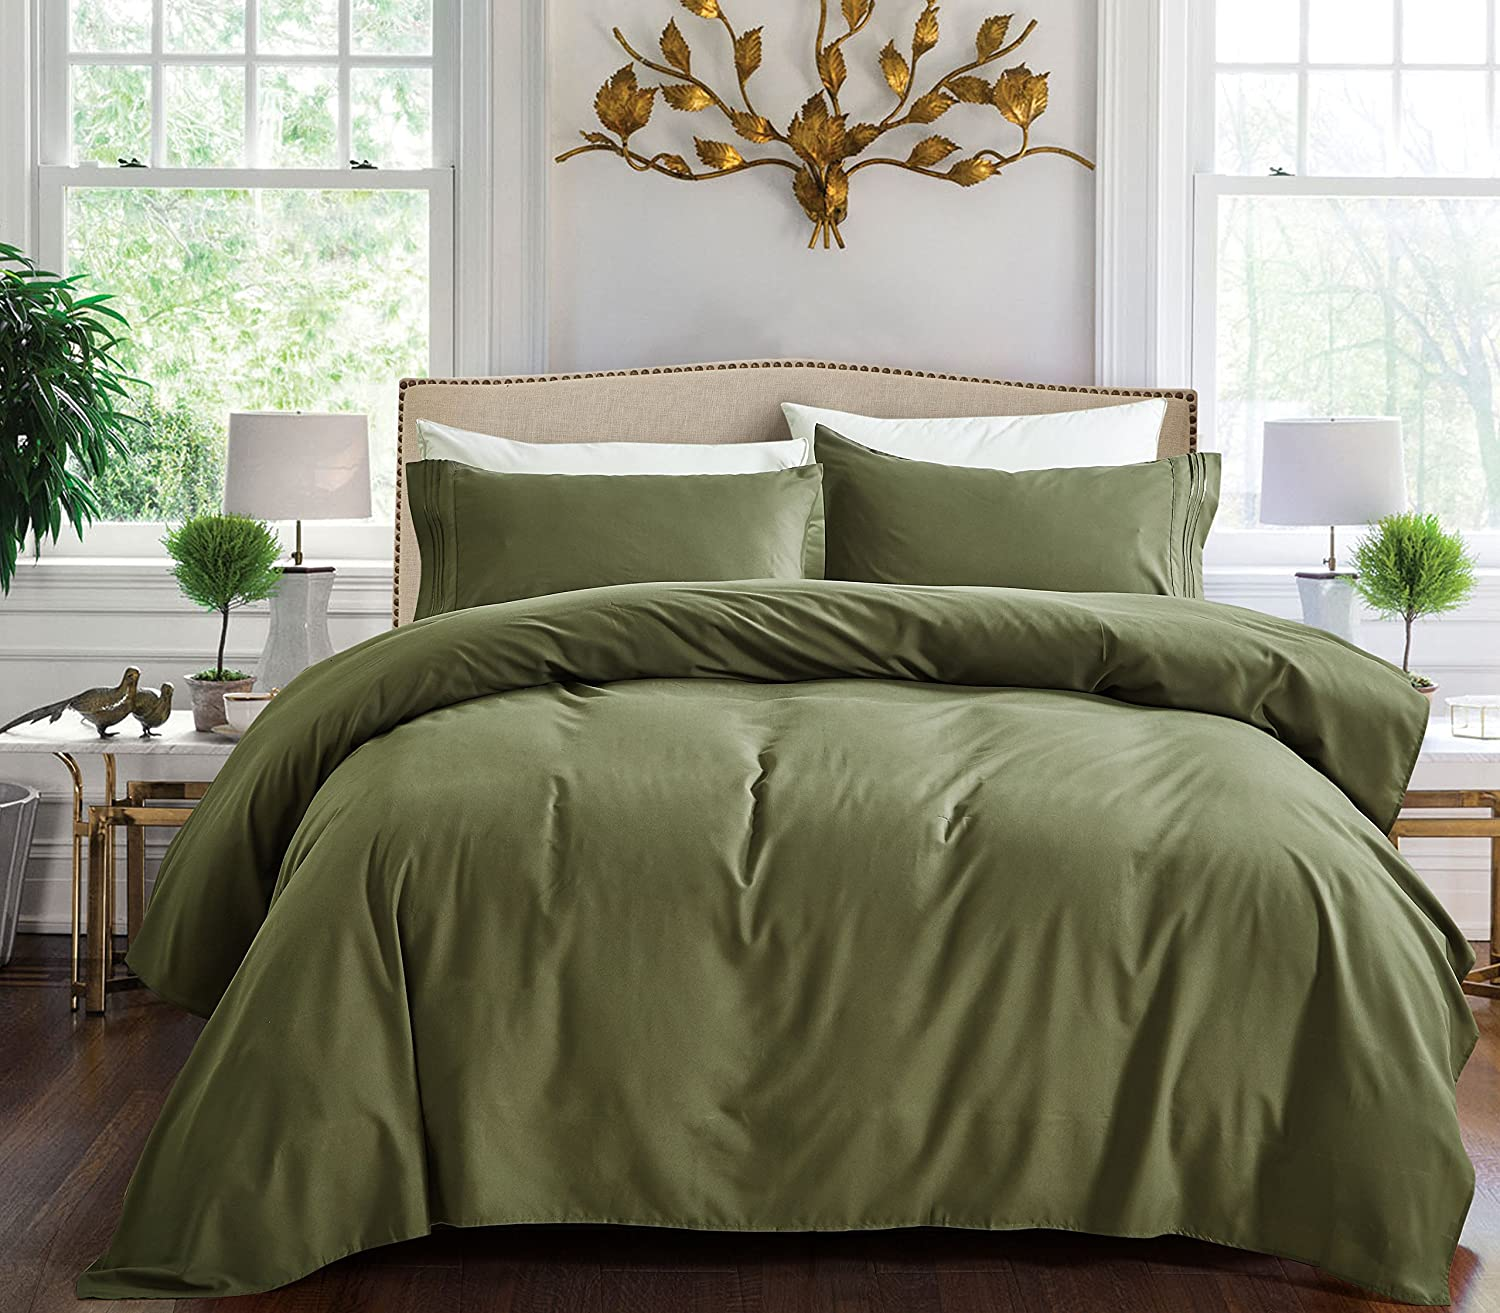 Vintage Bedding Clearance Sale